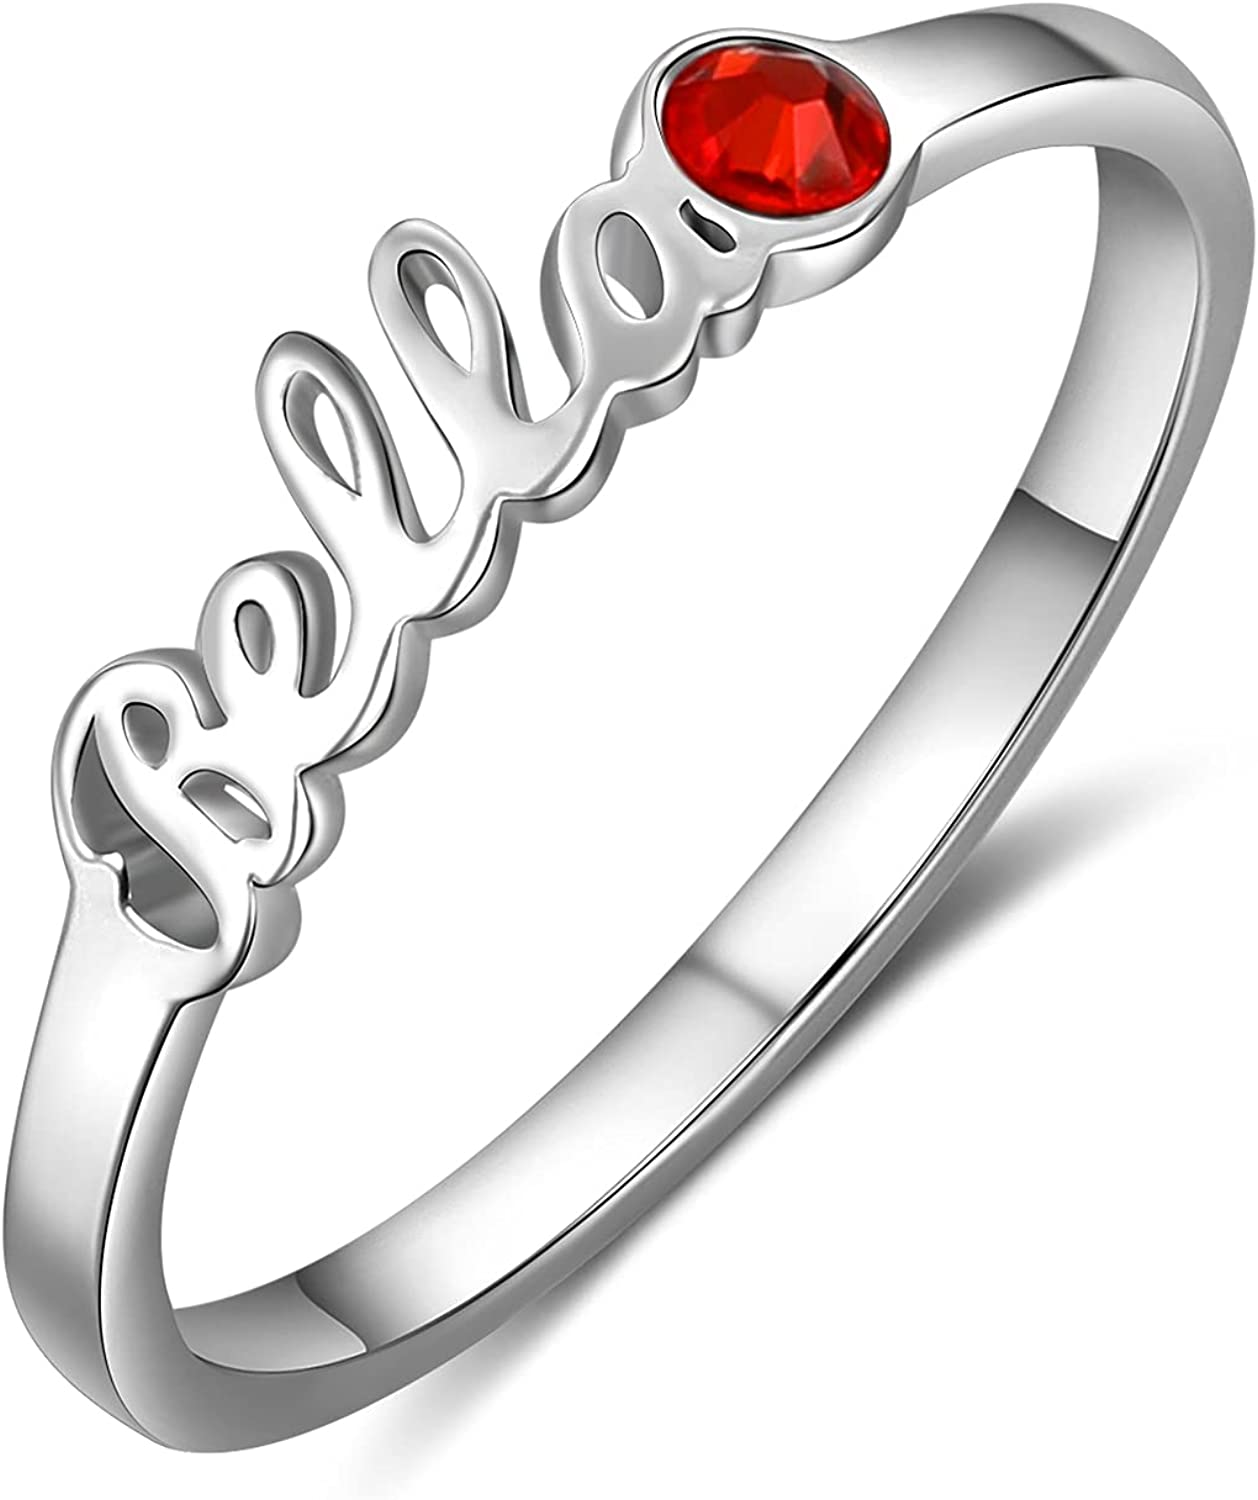 LanM Personalized Rings for Women Mothers Ring with 1-4 Simulated Birthstones Custom Name Rings Infinity Rings Promise Rings for Her Gift for Women Girls